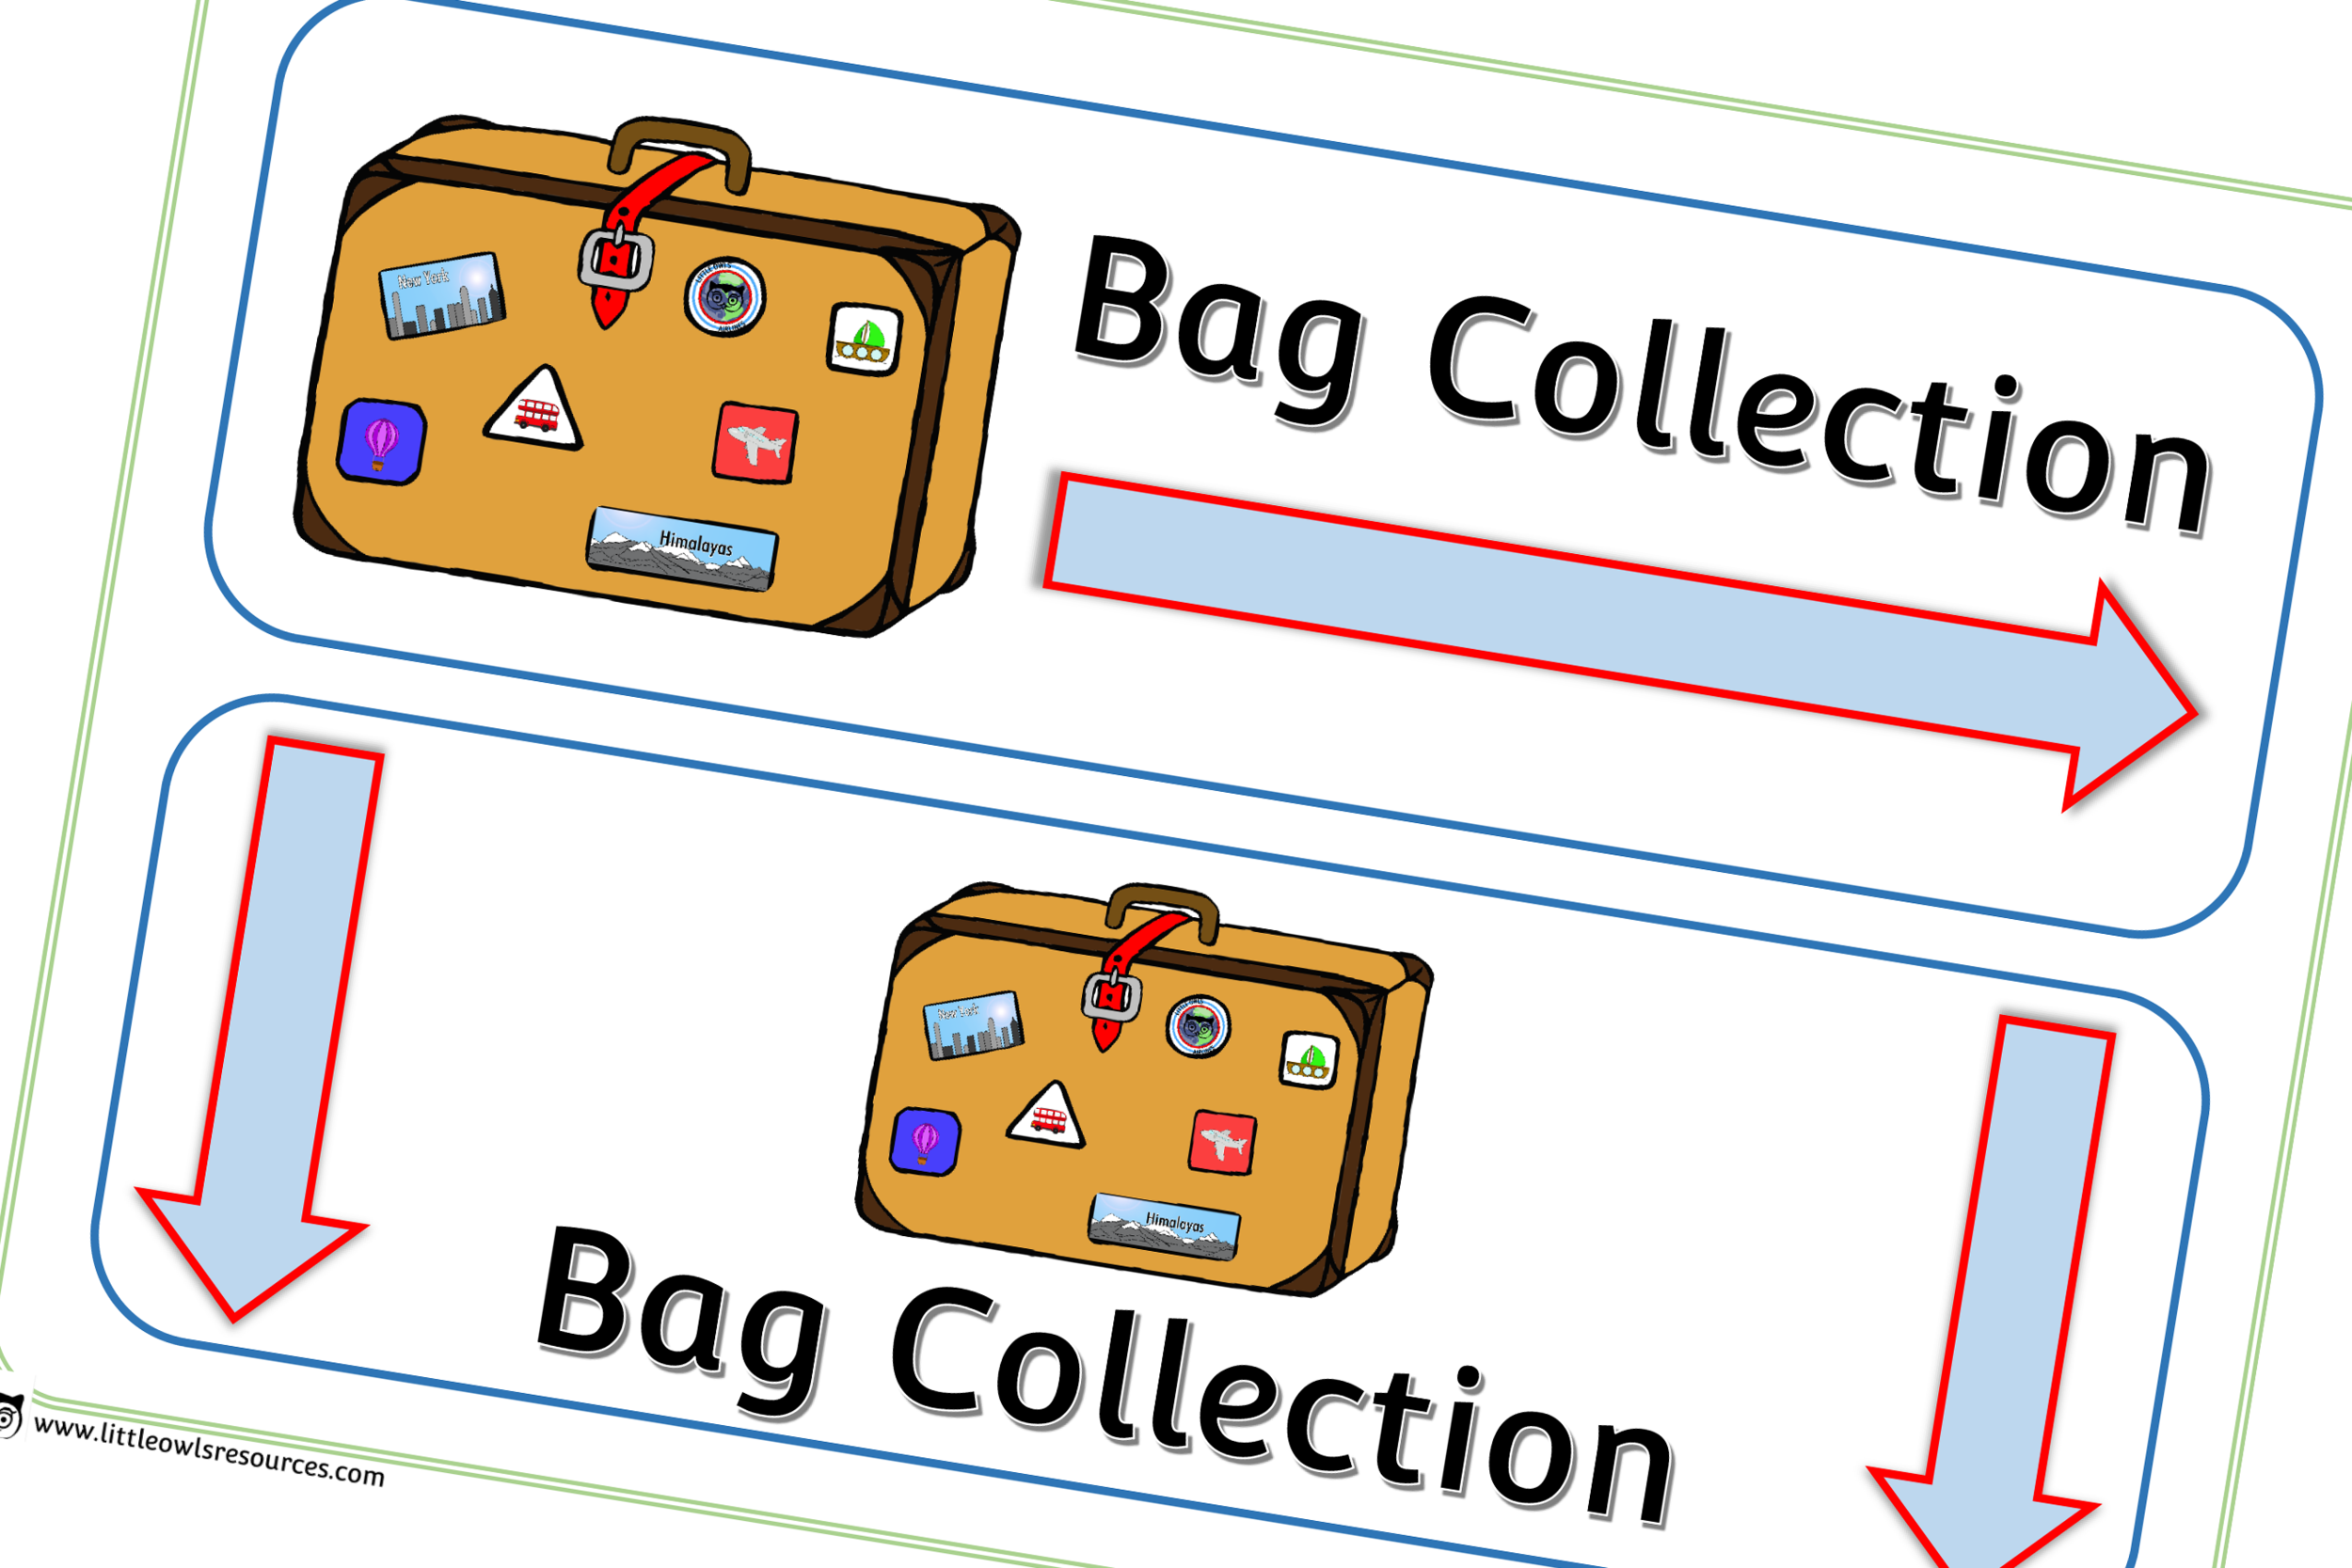 BAG COLLECTION POSTERS